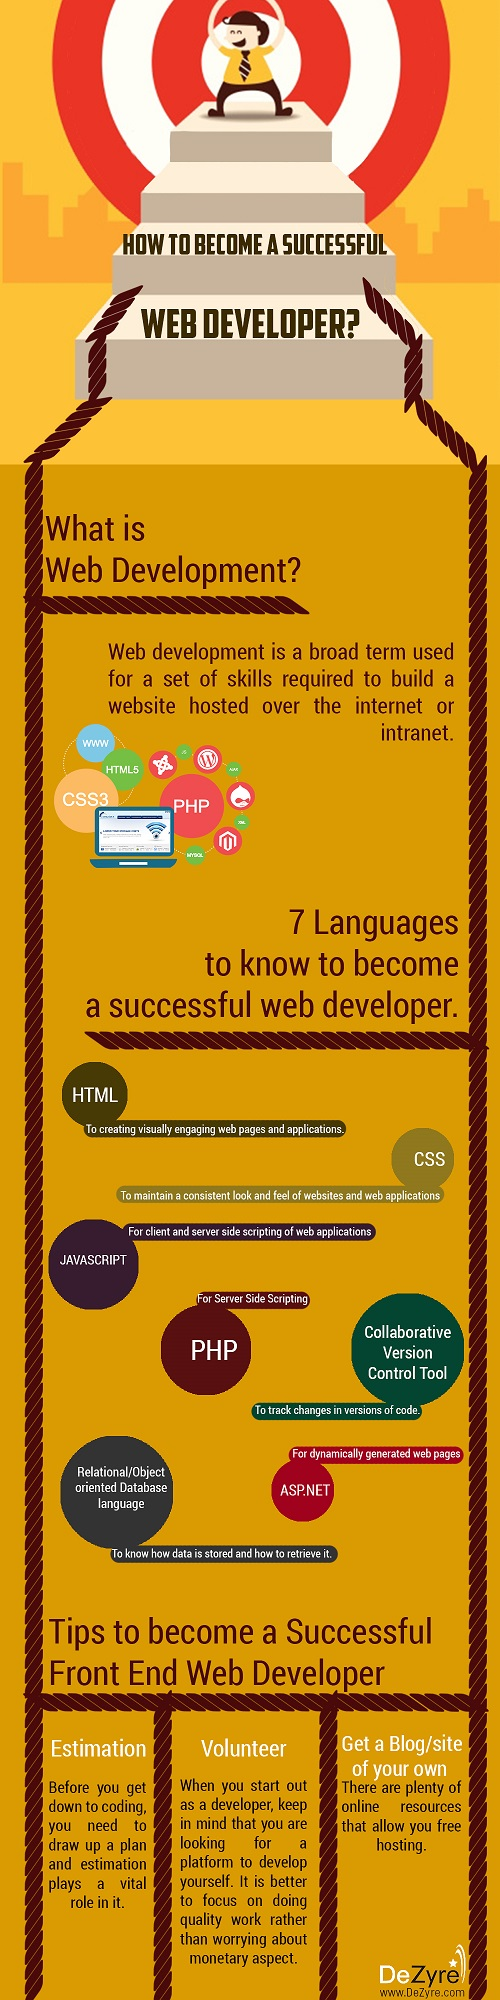 How to become a successful web developer